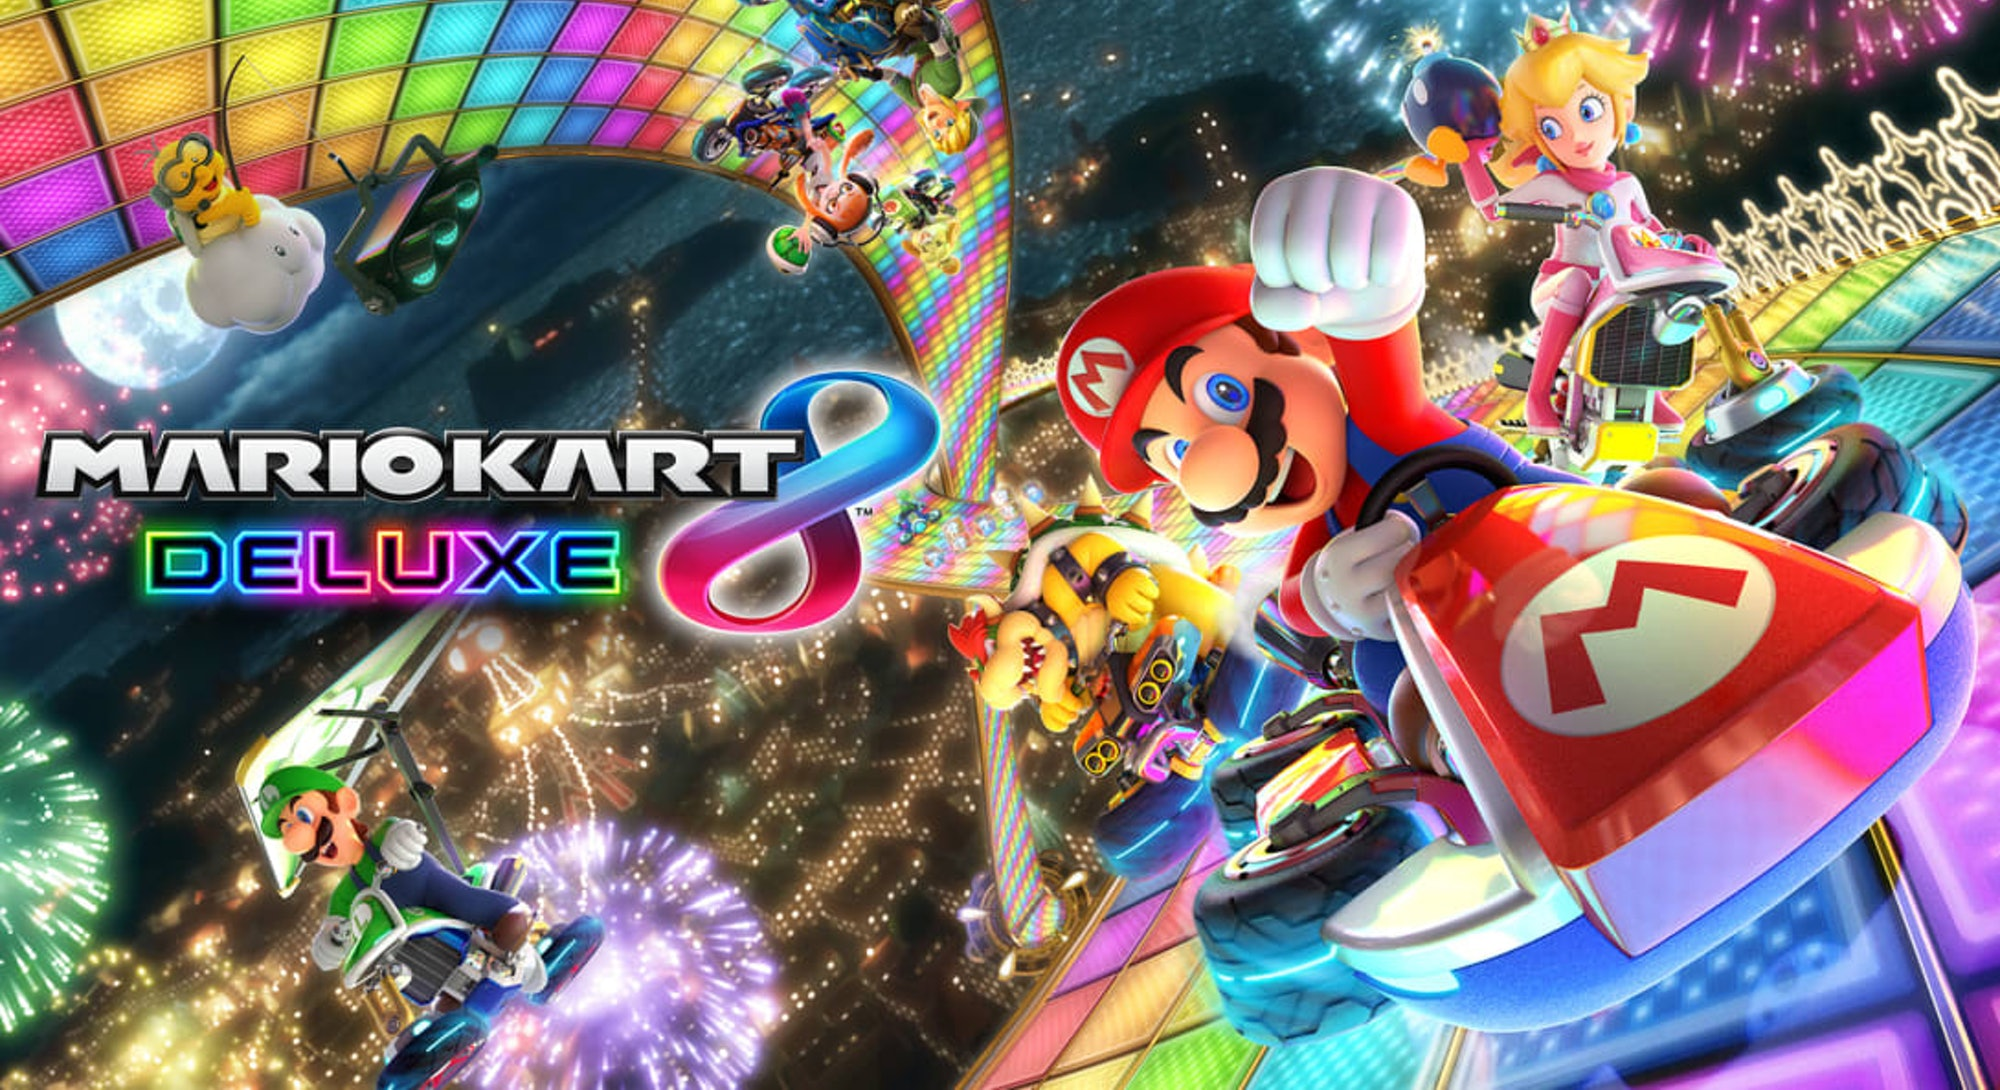 Mario Kart 8 for the Nintendo Switch. Gaming. Games. Video games.